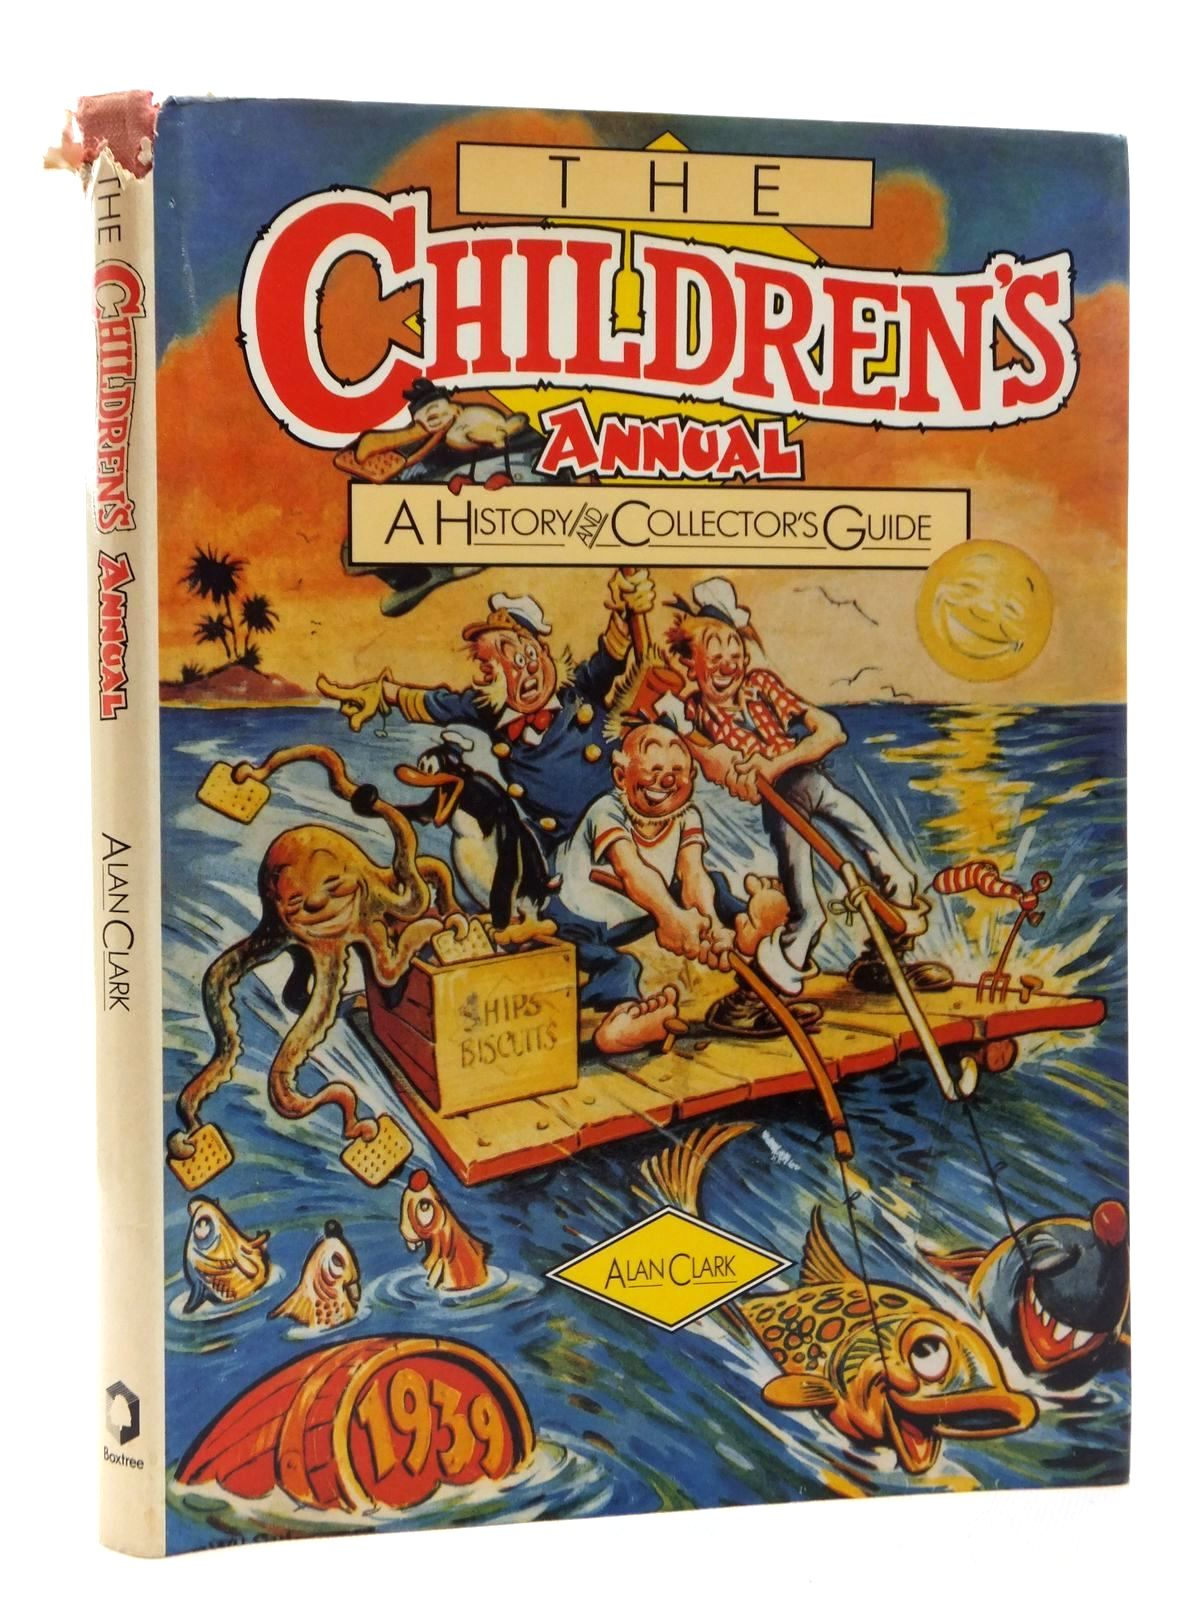 Photo of THE CHILDREN'S ANNUAL A HISTORY AND COLLECTOR'S GUIDE written by Clark, Alan published by Boxtree (STOCK CODE: 1317081)  for sale by Stella & Rose's Books